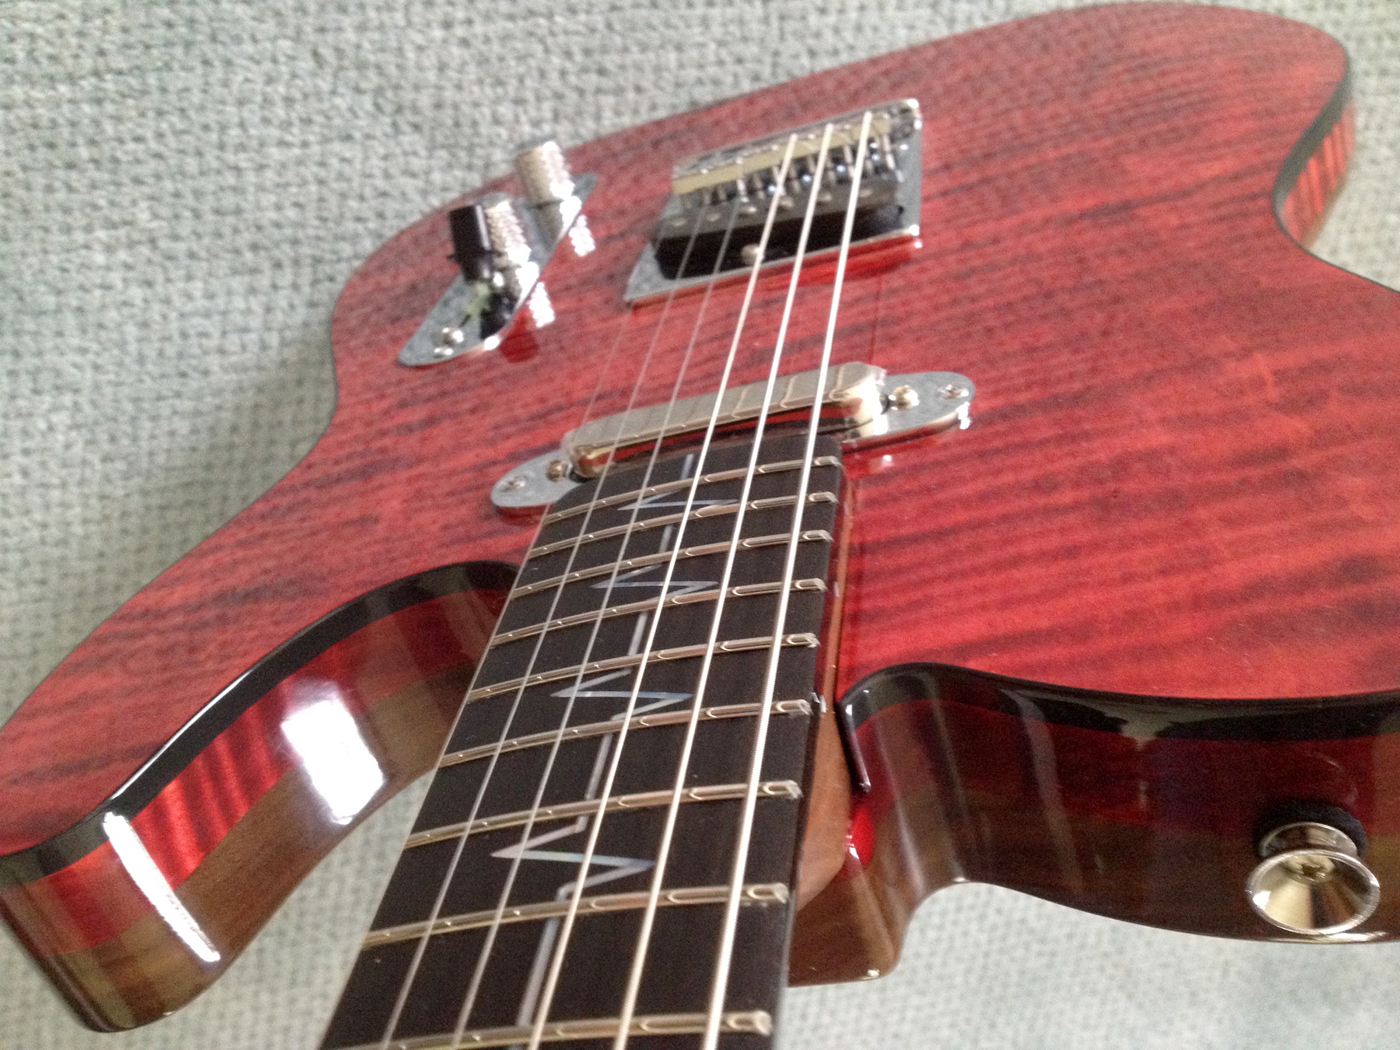 A close-up of the top and neck of the guitar consisting of multi-piece black walnut construction. Provided photo